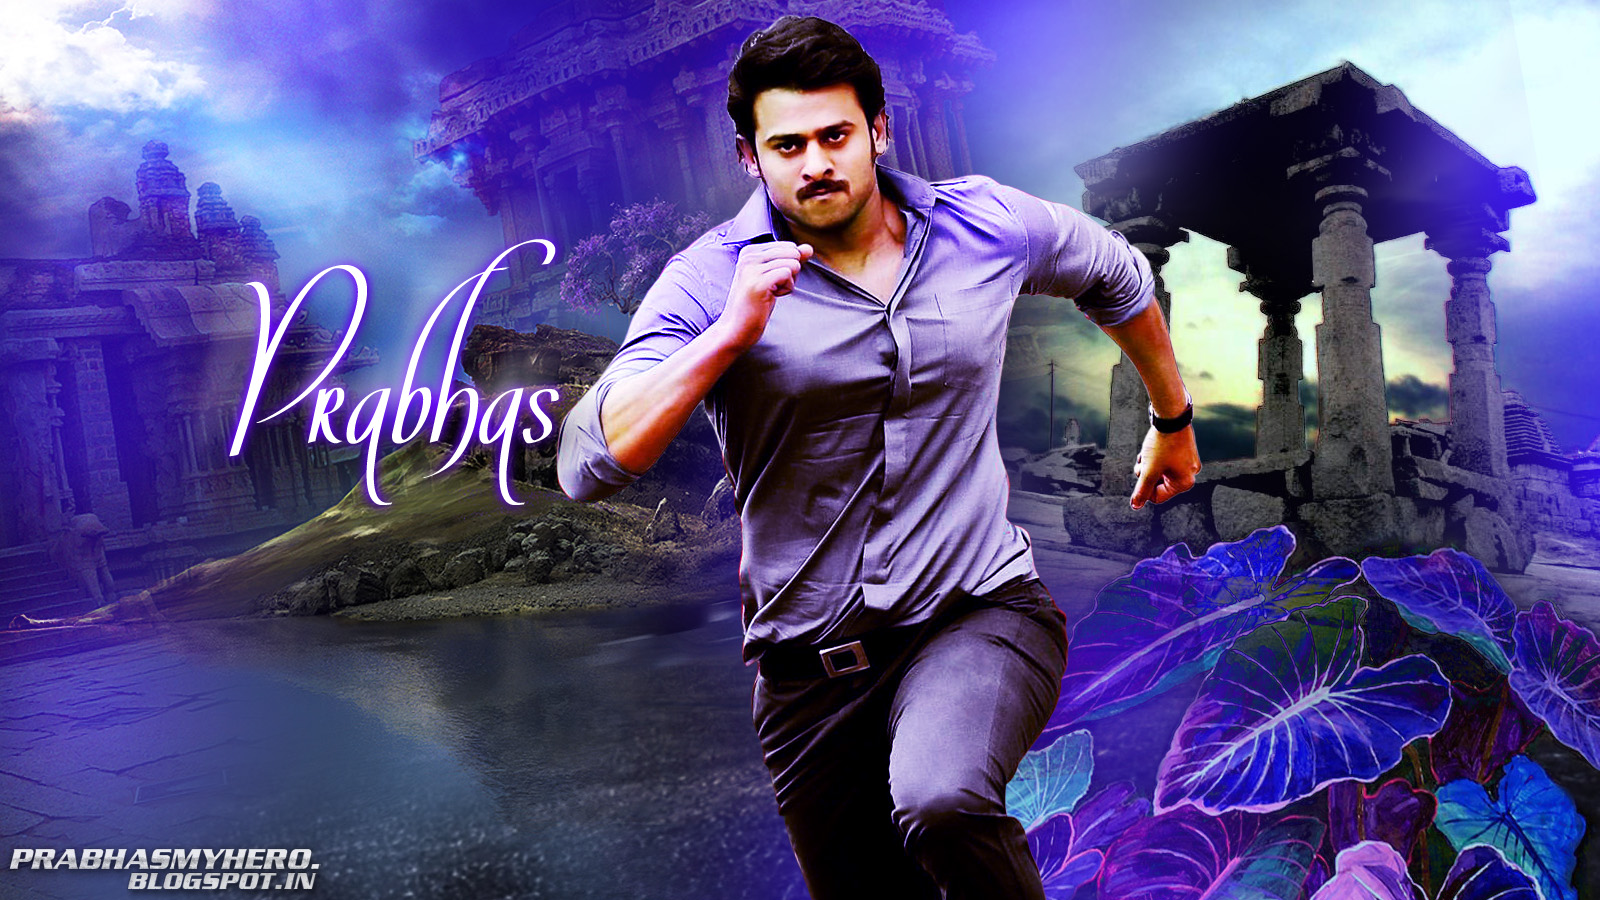 Stylish Prabhas Hq Wallpaper In Rebel: Prabhas HD Wallpapers